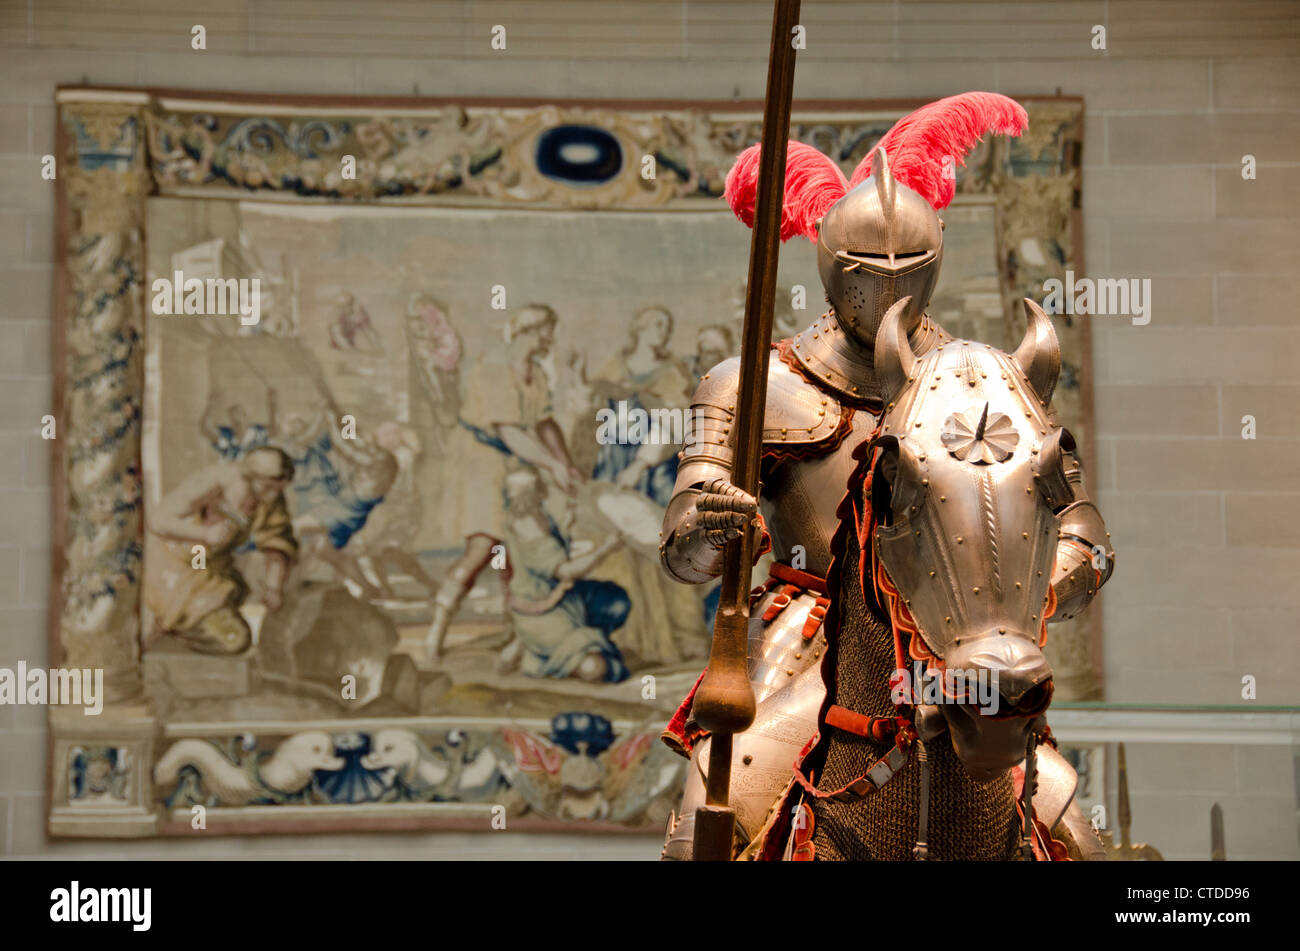 Ohio, Cleveland. The Cleveland Museum of Art. Steel armor. Stock Photo